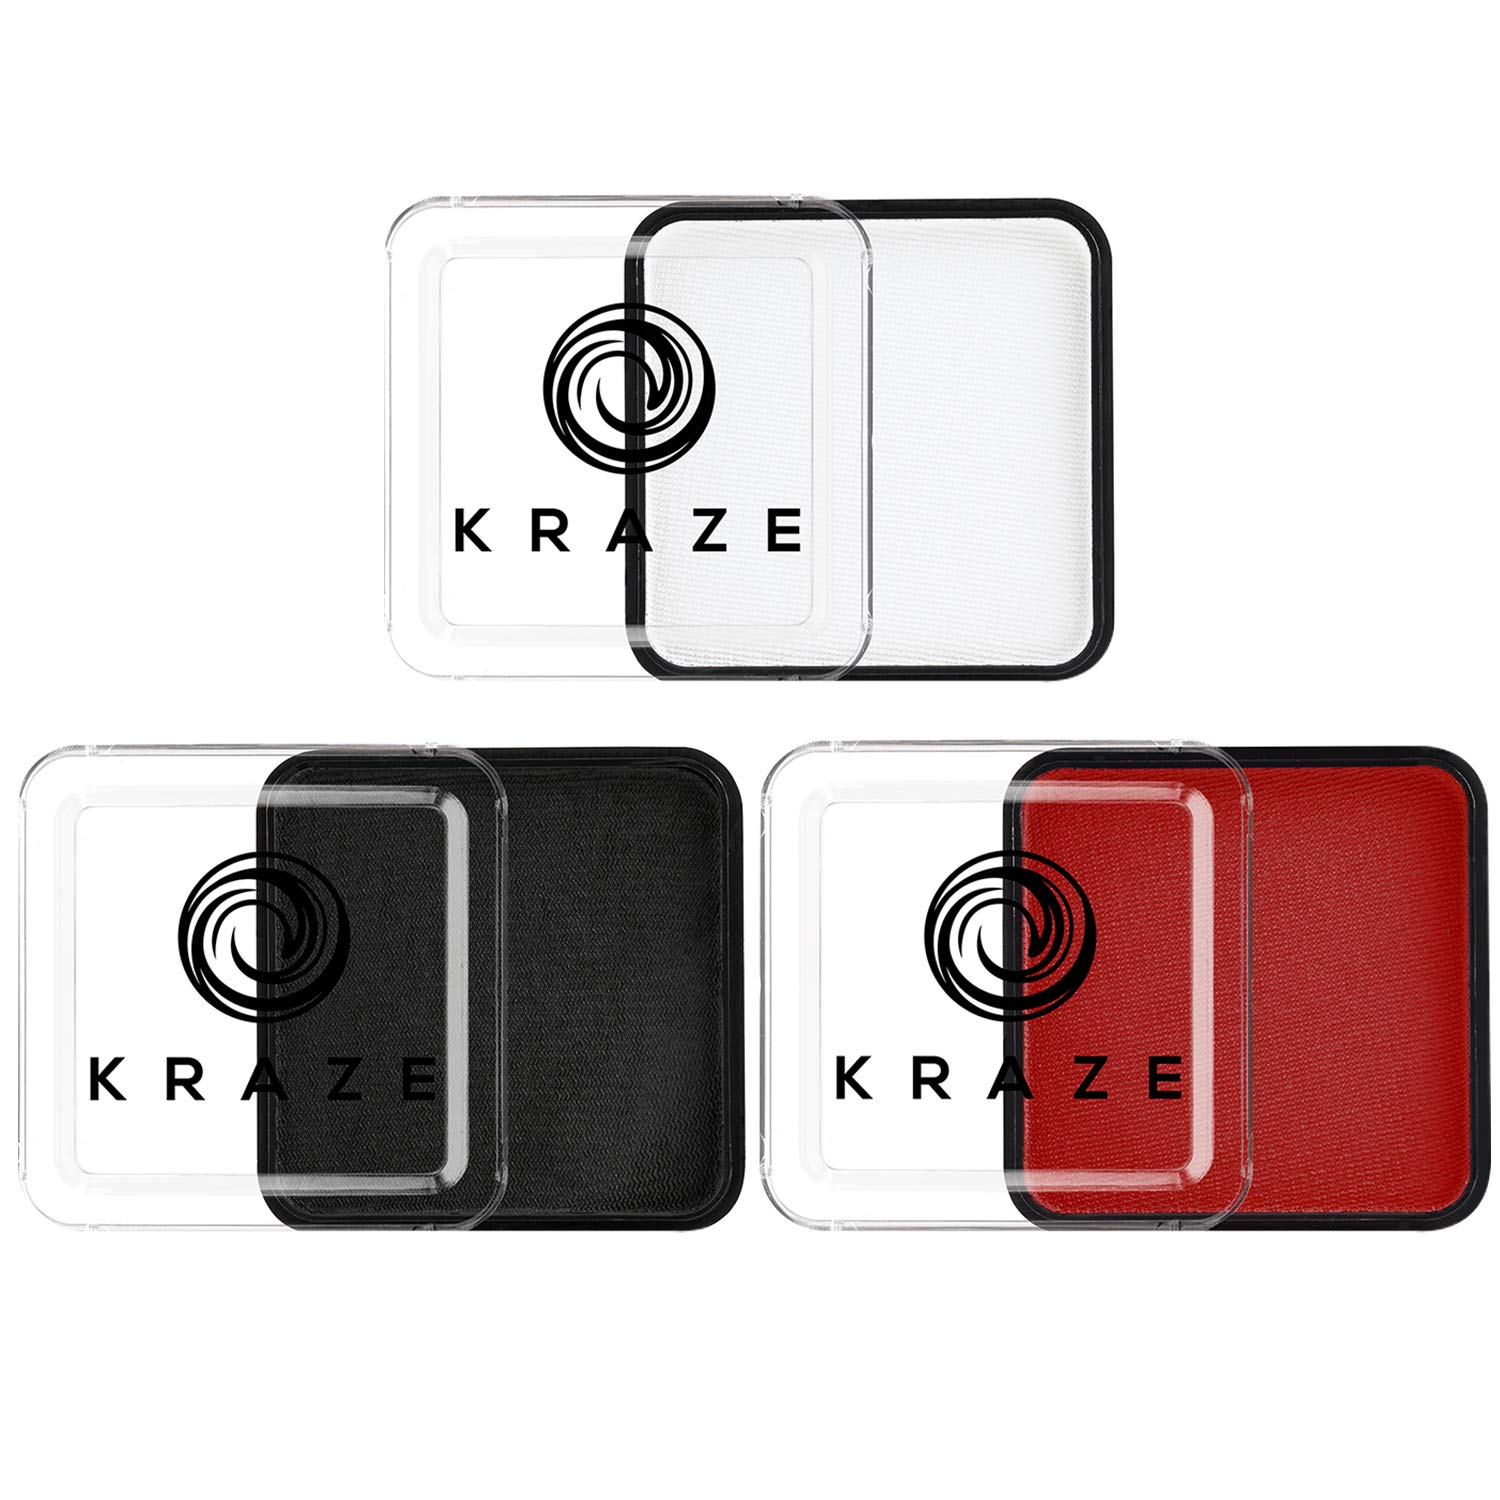 Kraze FX Red, Black & White Face Paint Set (25 gm each) - Hypoallergenic, Non-Toxic, Water Activated Professional Face & Body Painting Makeup, Combo Value Pack